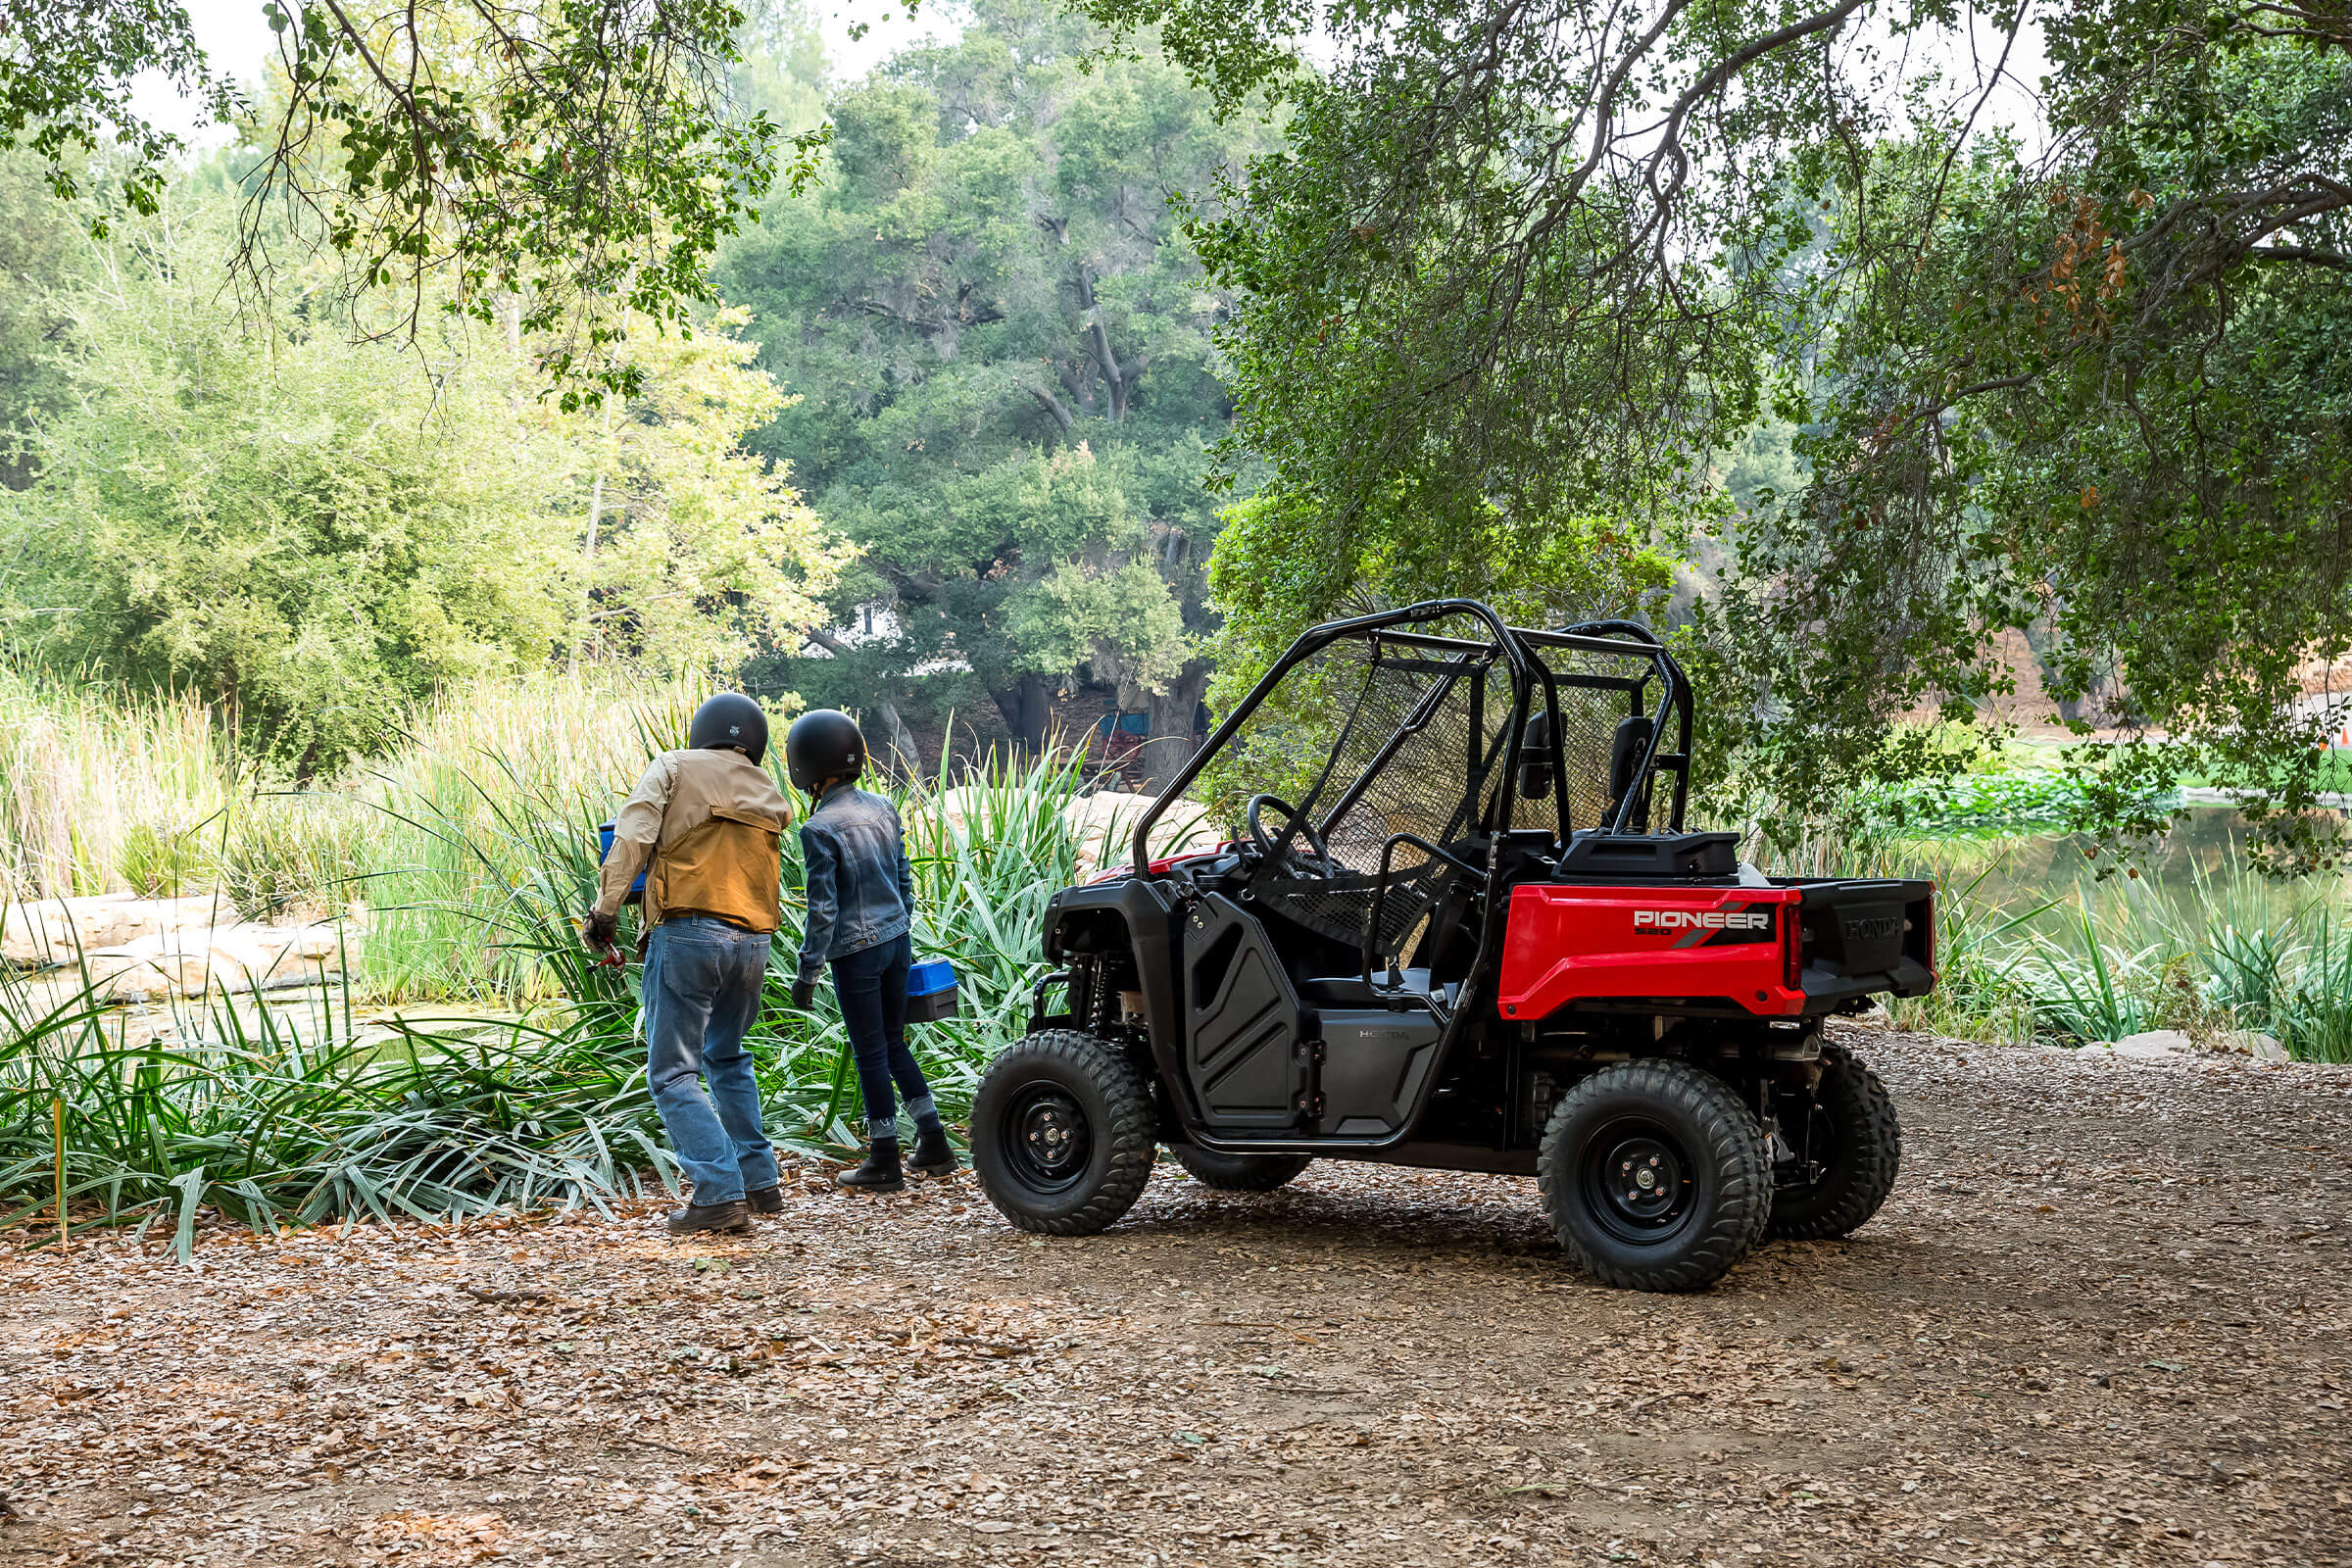 2021 Honda Pioneer 520 in Brookhaven, Mississippi - Photo 2